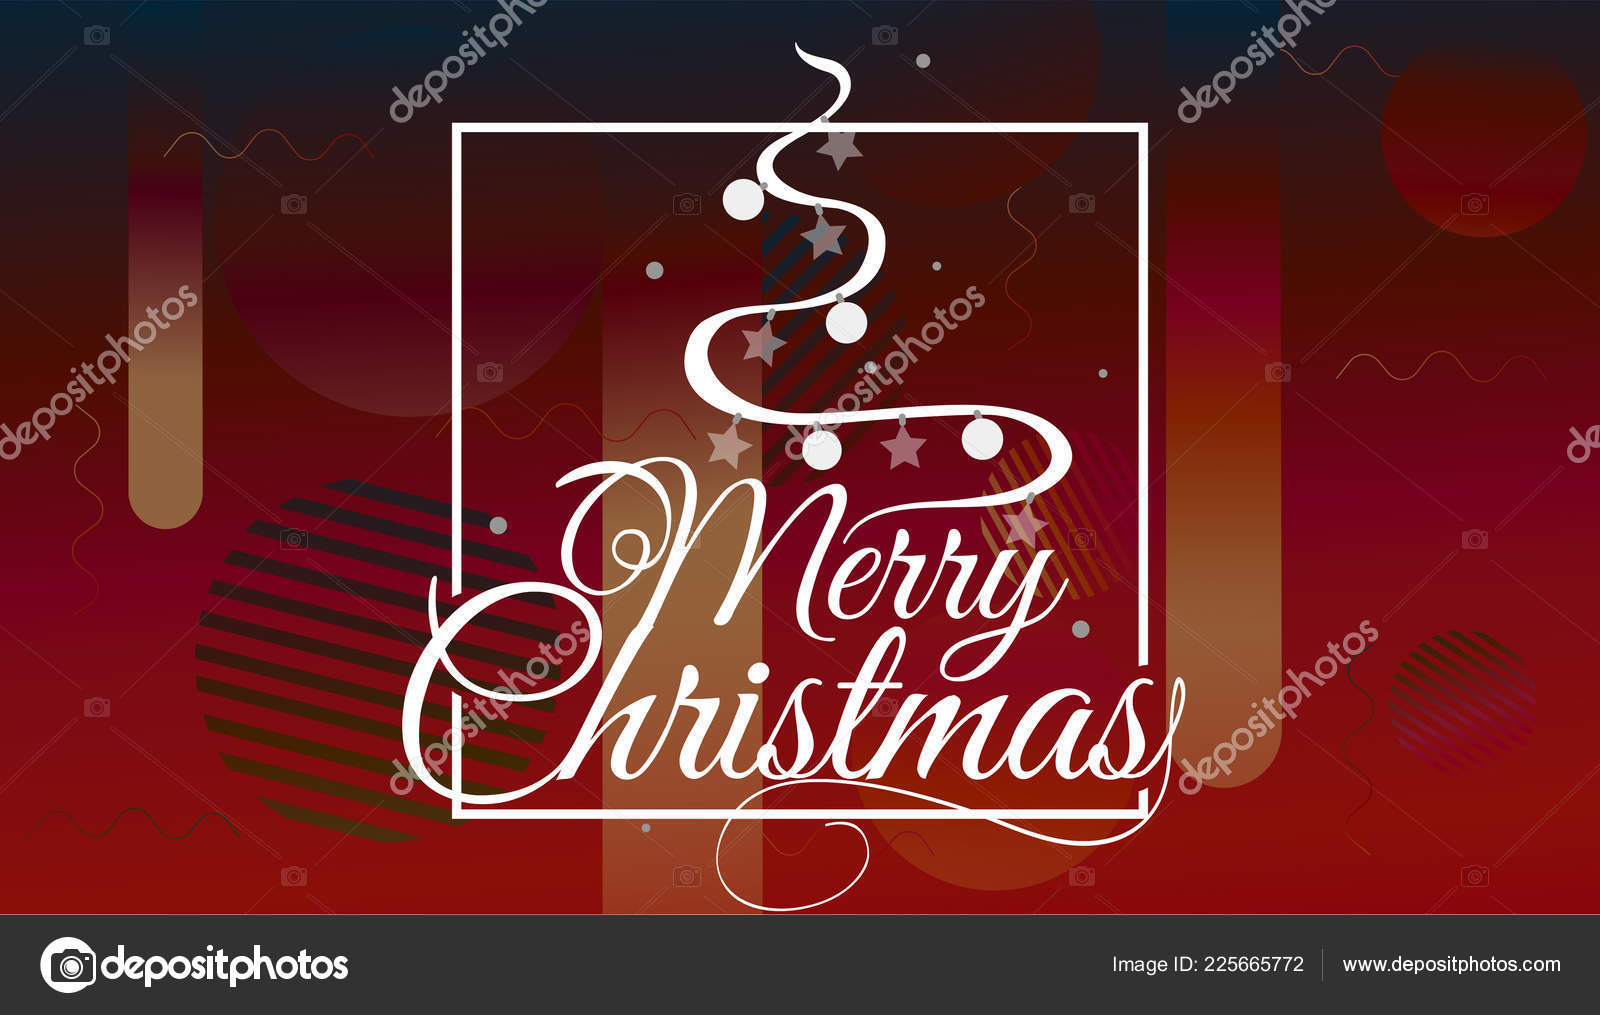 Have very Merry Christmas and Happy New Year we wish you lettering logo on gradient background